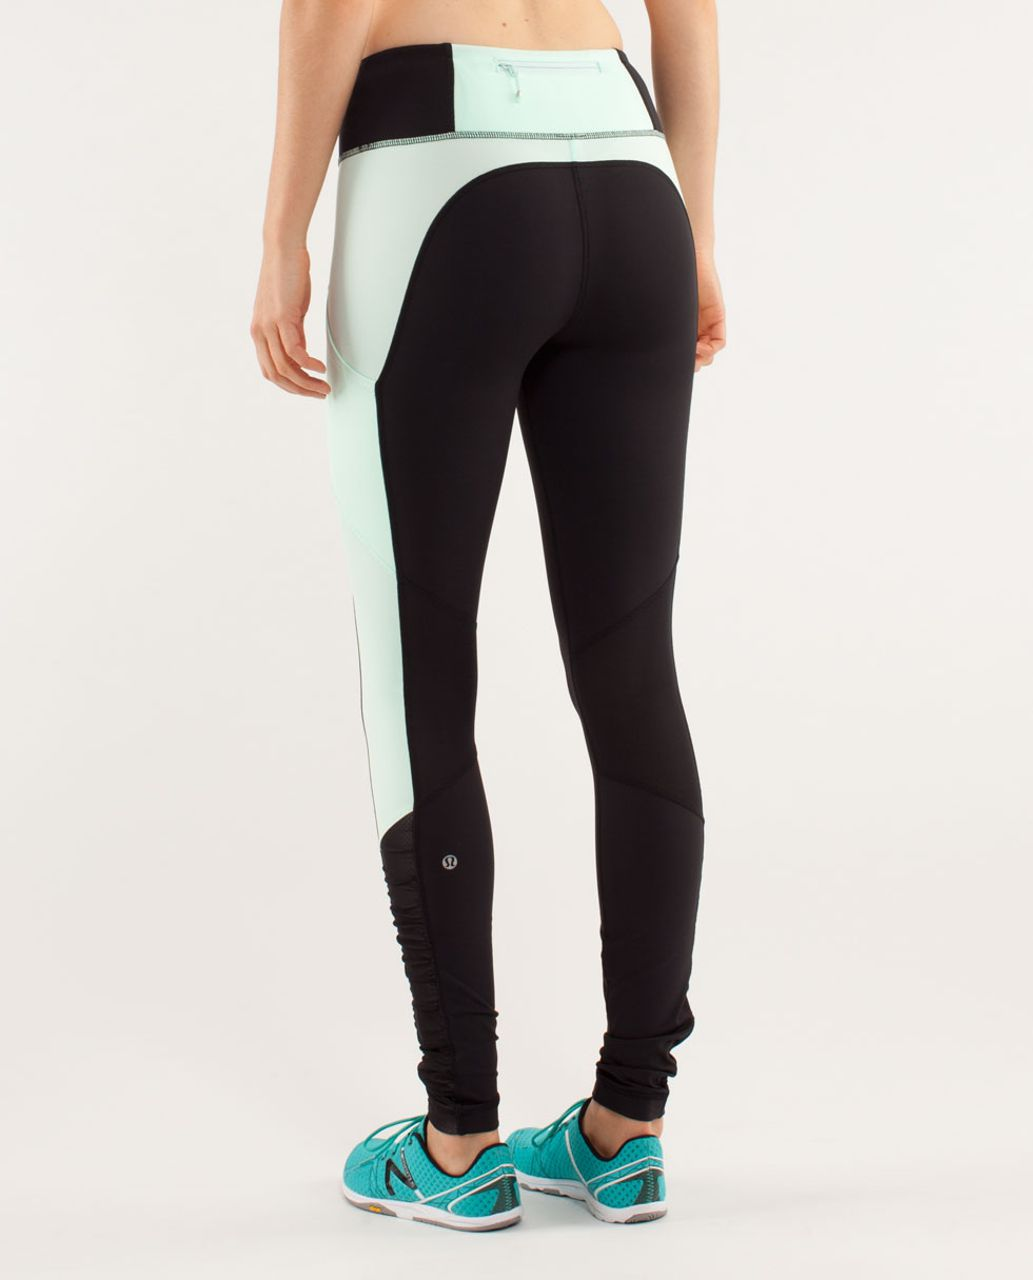 Lululemon Run:  Get Up And Glow Tight - Black / Mint Moment